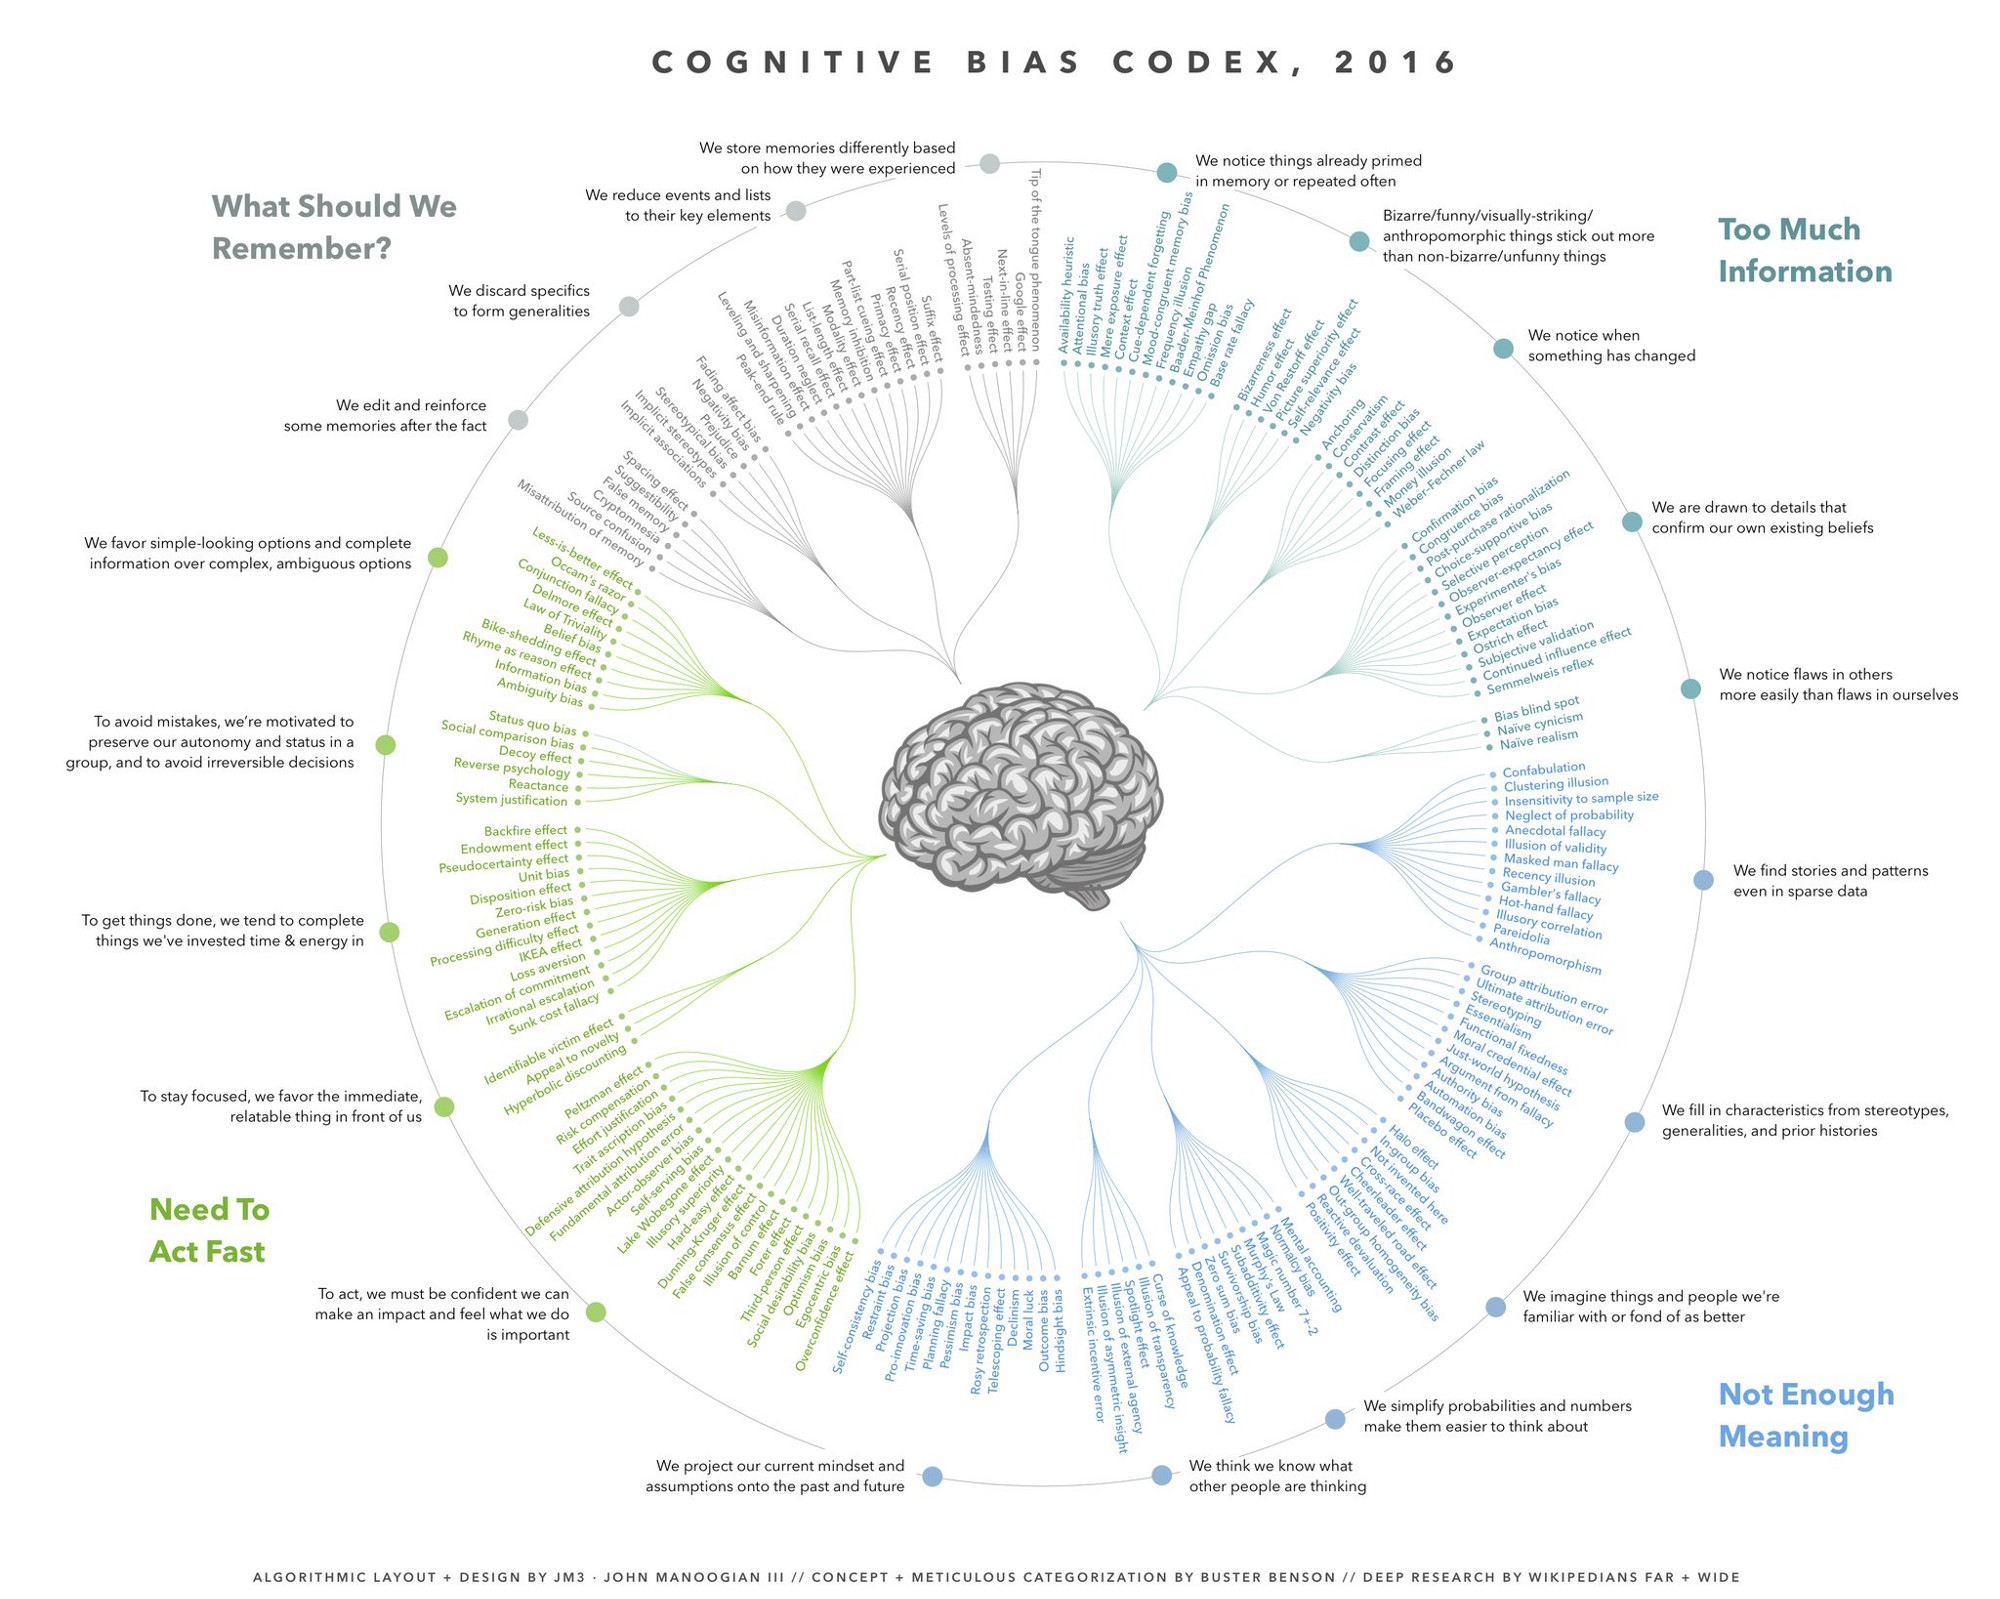 Cognitive Bias Codex, 2016